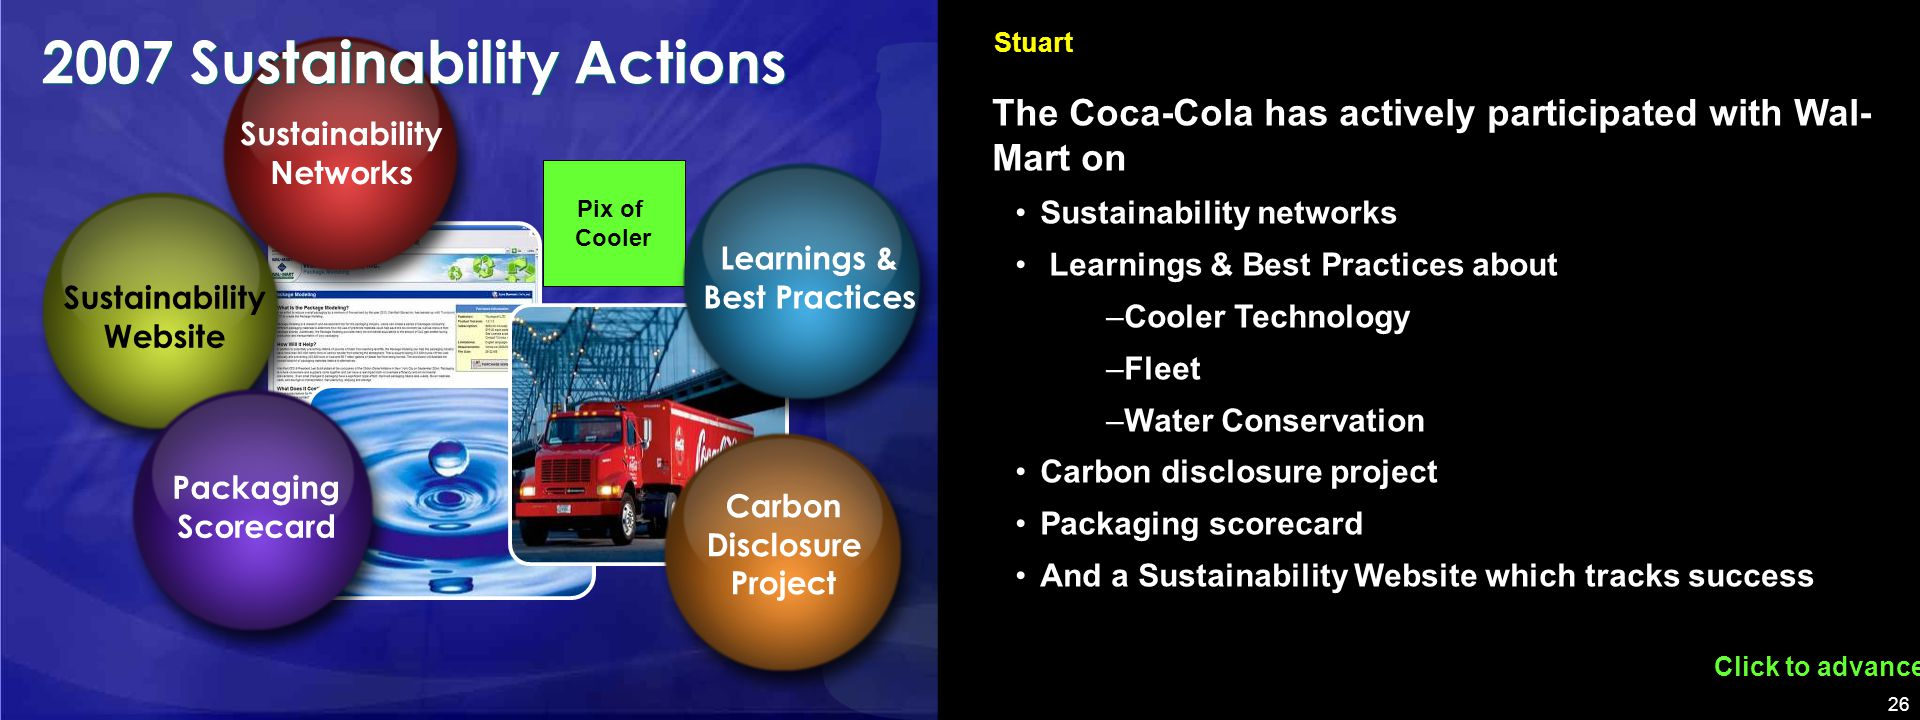 26 Pix of Cooler Click to advance Stuart The Coca-Cola has actively participated with Wal- Mart on Sustainability networks Learnings & Best Practices about –Cooler Technology –Fleet –Water Conservation Carbon disclosure project Packaging scorecard And a Sustainability Website which tracks success Sustainability Website Sustainability Networks Learnings & Best Practices Carbon Disclosure Project Packaging Scorecard 2007 Sustainability Actions